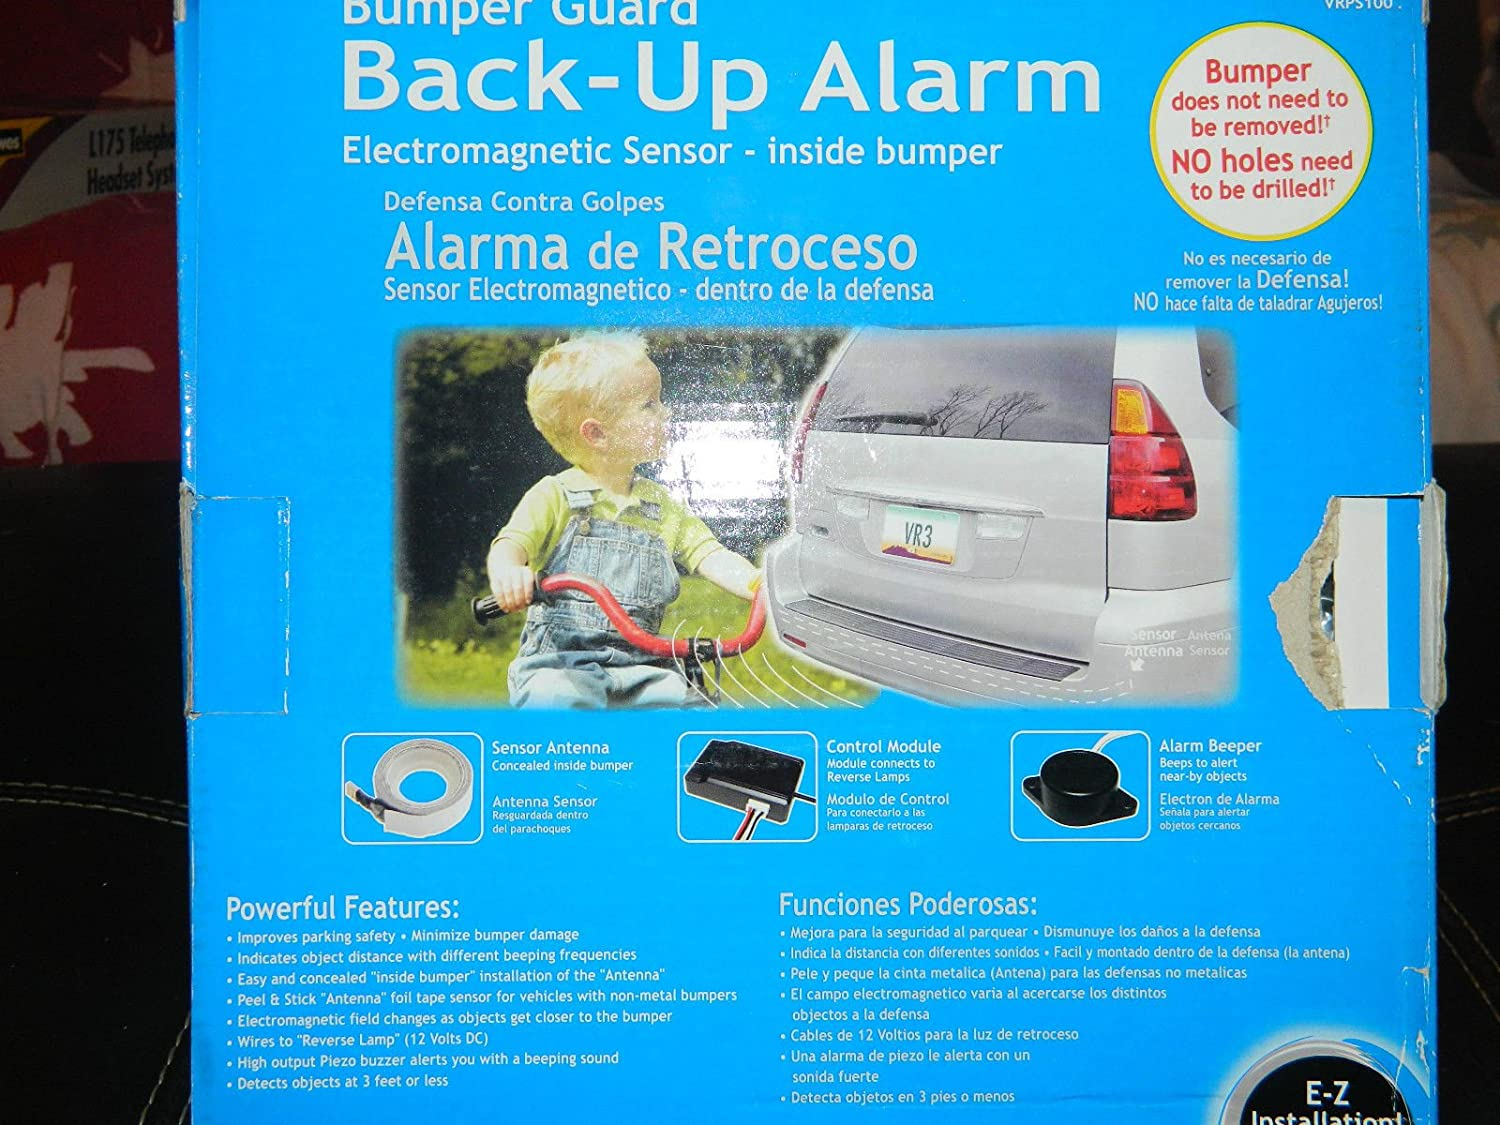 Bumper Guard - Back-up Alarm